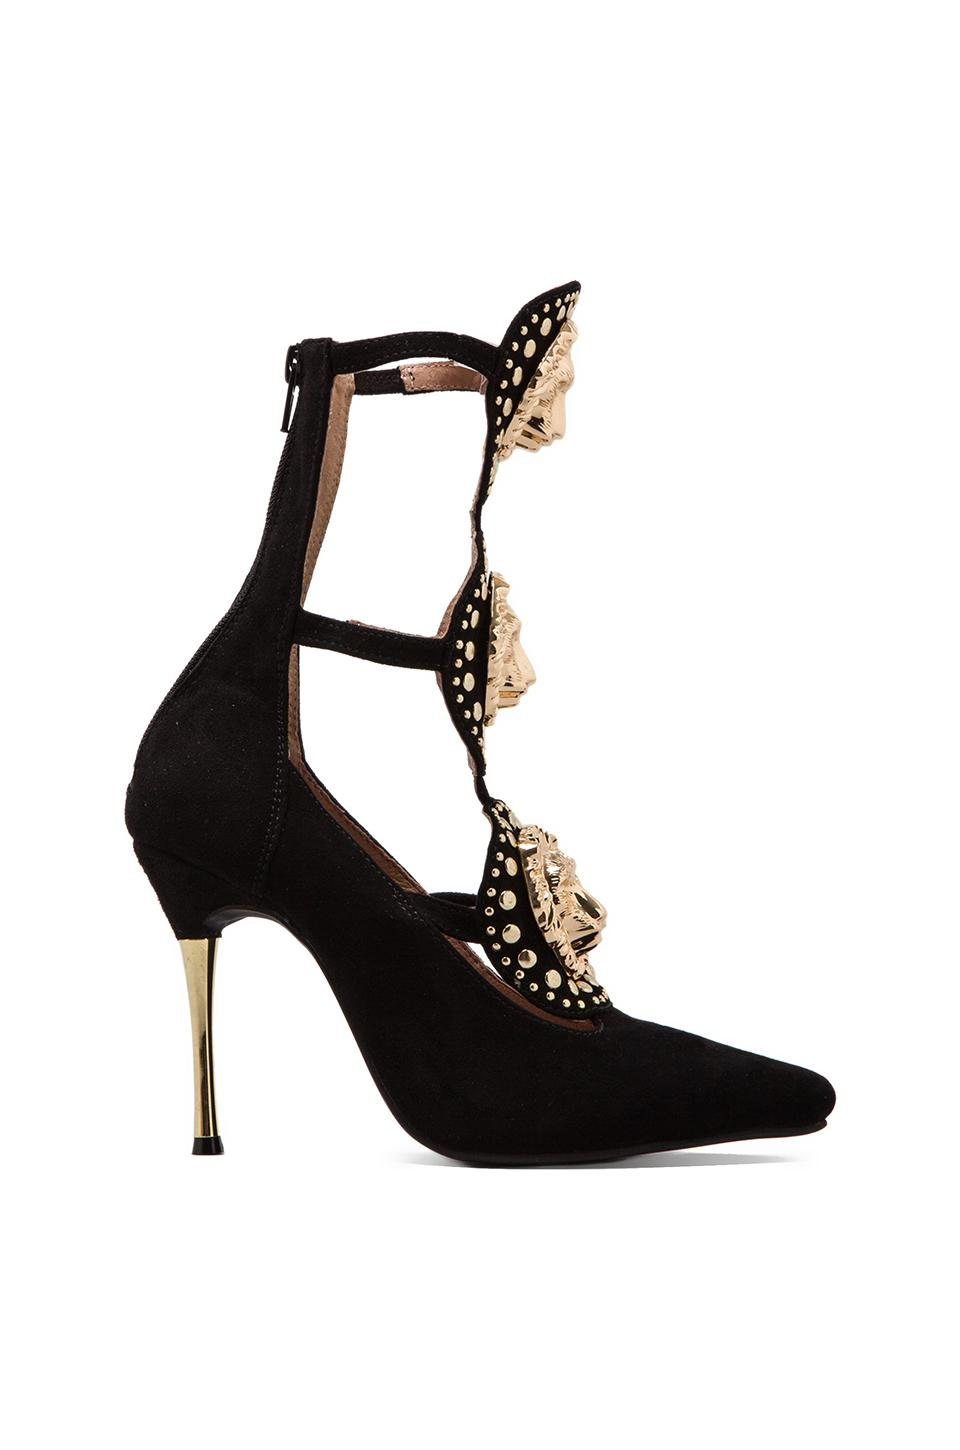 Jeffrey Campbell Mekka Embellished Heel in Black/ Gold